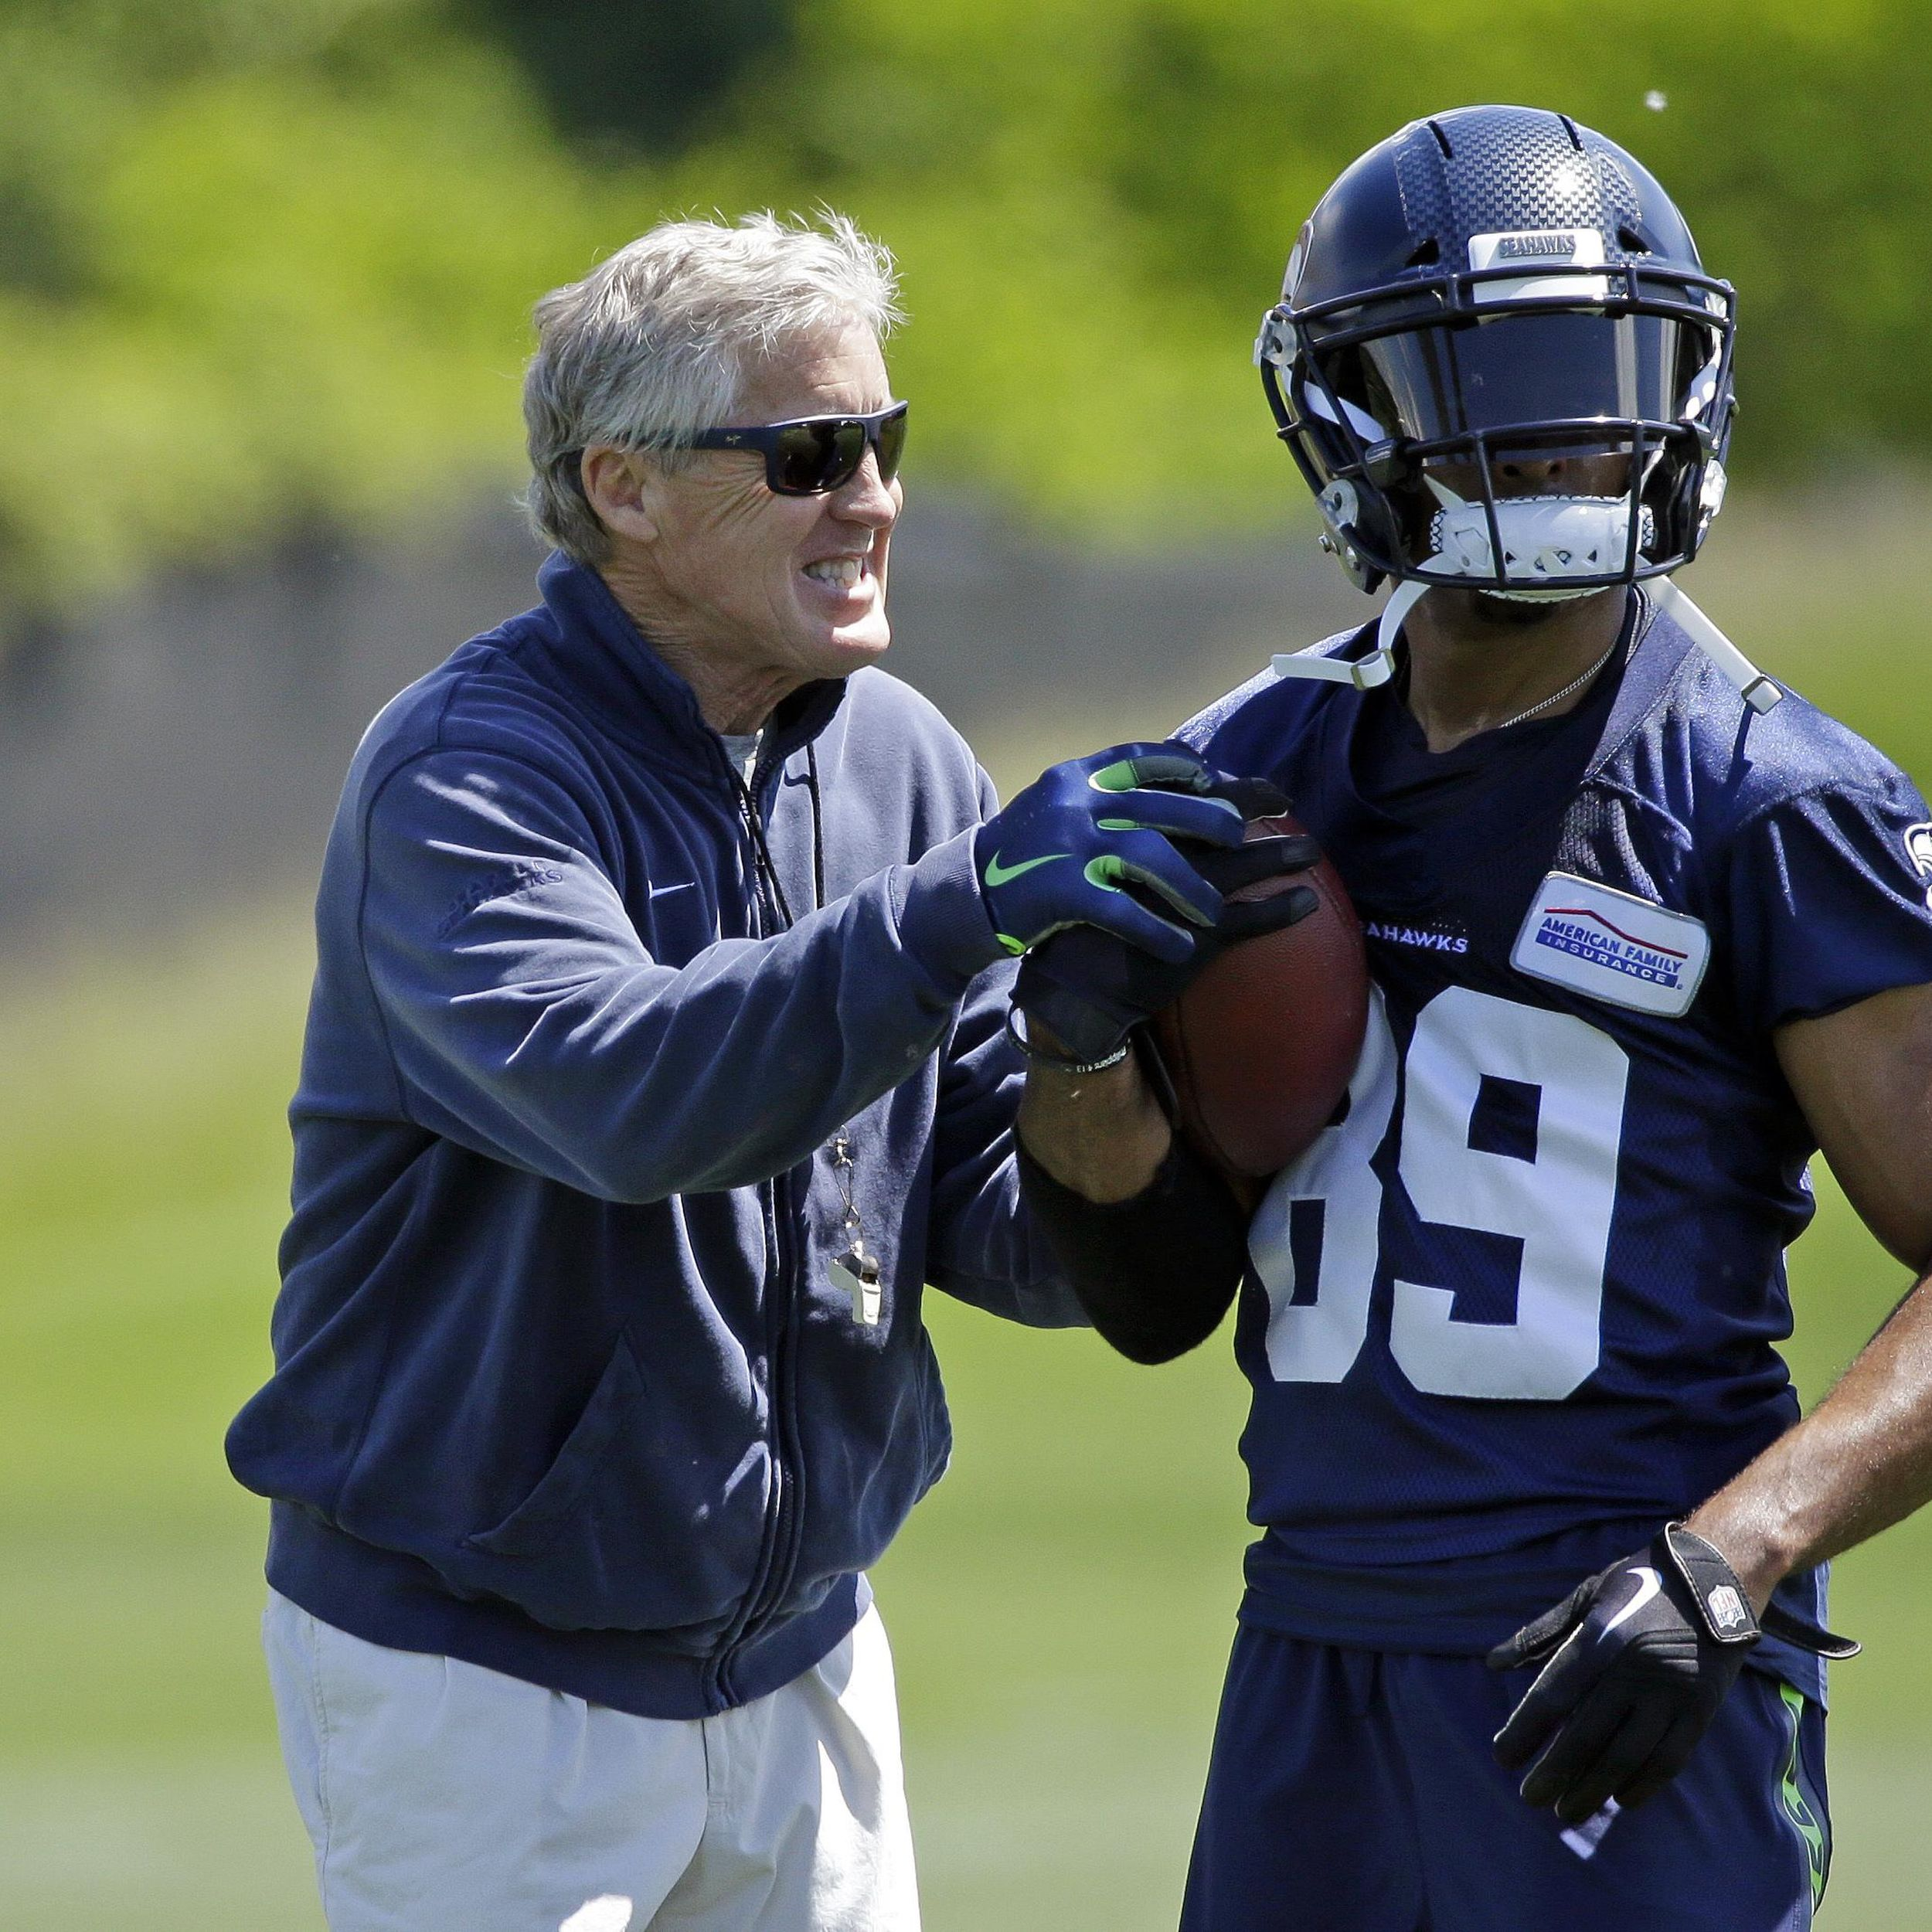 Pete Carroll Says Colin Kaepernick A Starter Just Not With Seahawks The Spokesman Review